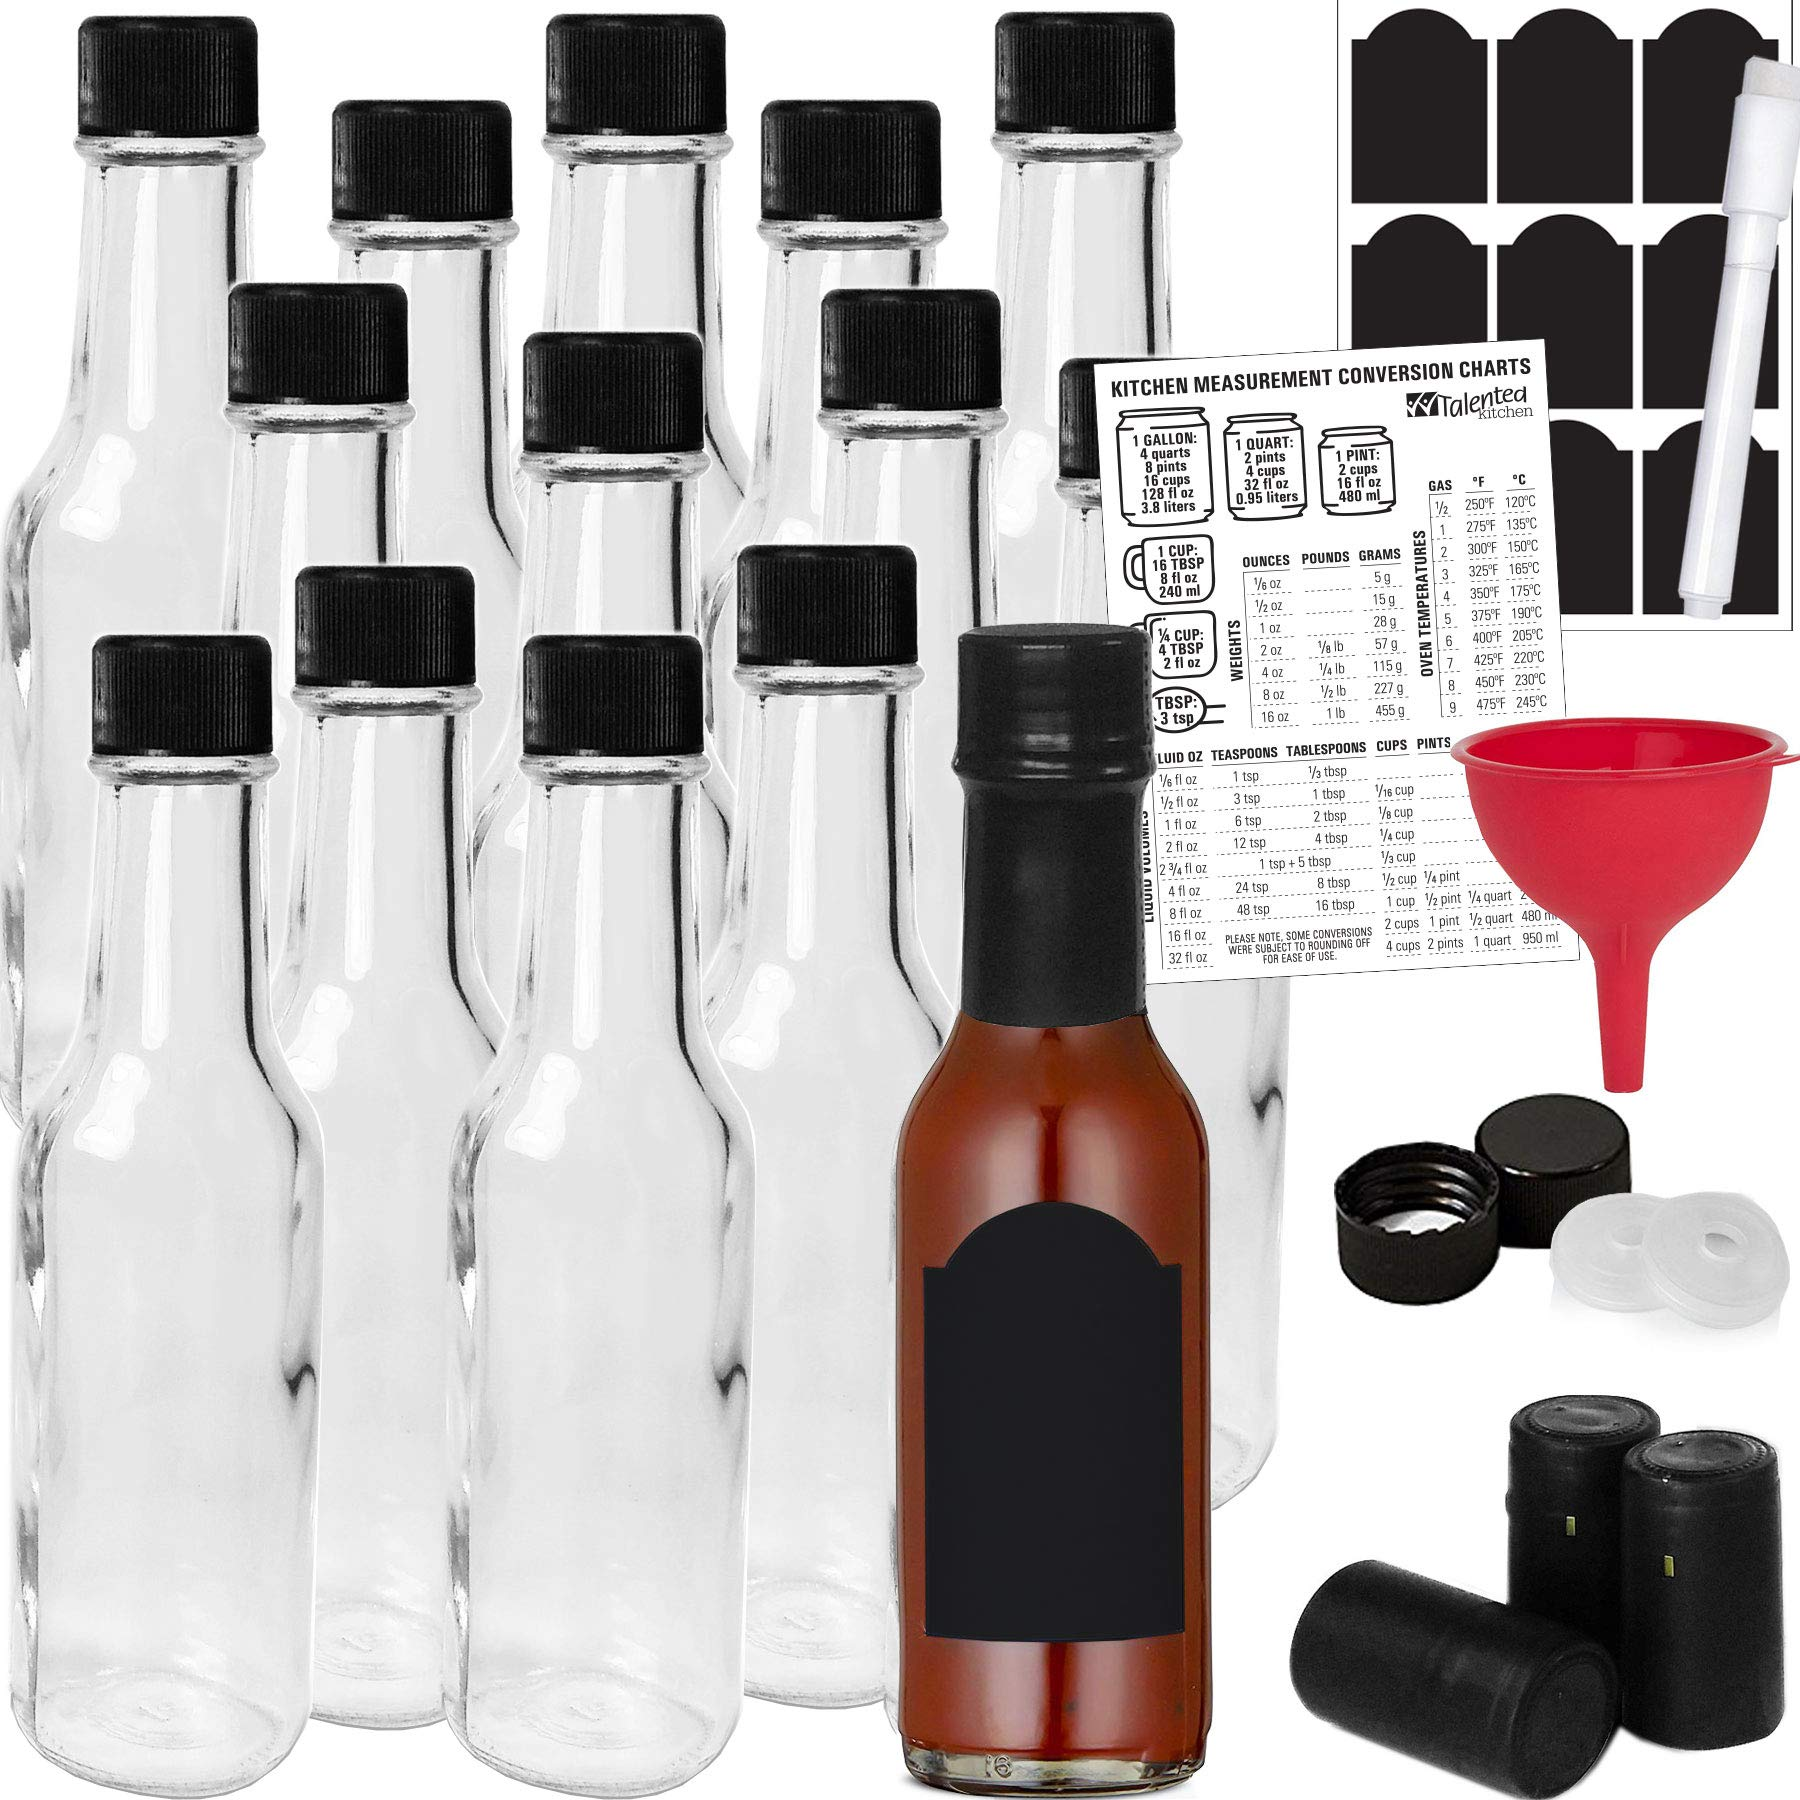 14-PACK Hot Sauce Bottles 5oz with Caps, Funnel for Kitchen, Chalkboard Labels, Shrink Capsules, Dripper Inserts. Mini Wine Bottle Hot Sauce Kit, 5 Oz Woozy Glass Bottle Dasher by Talented Kitchen by Talented Kitchen